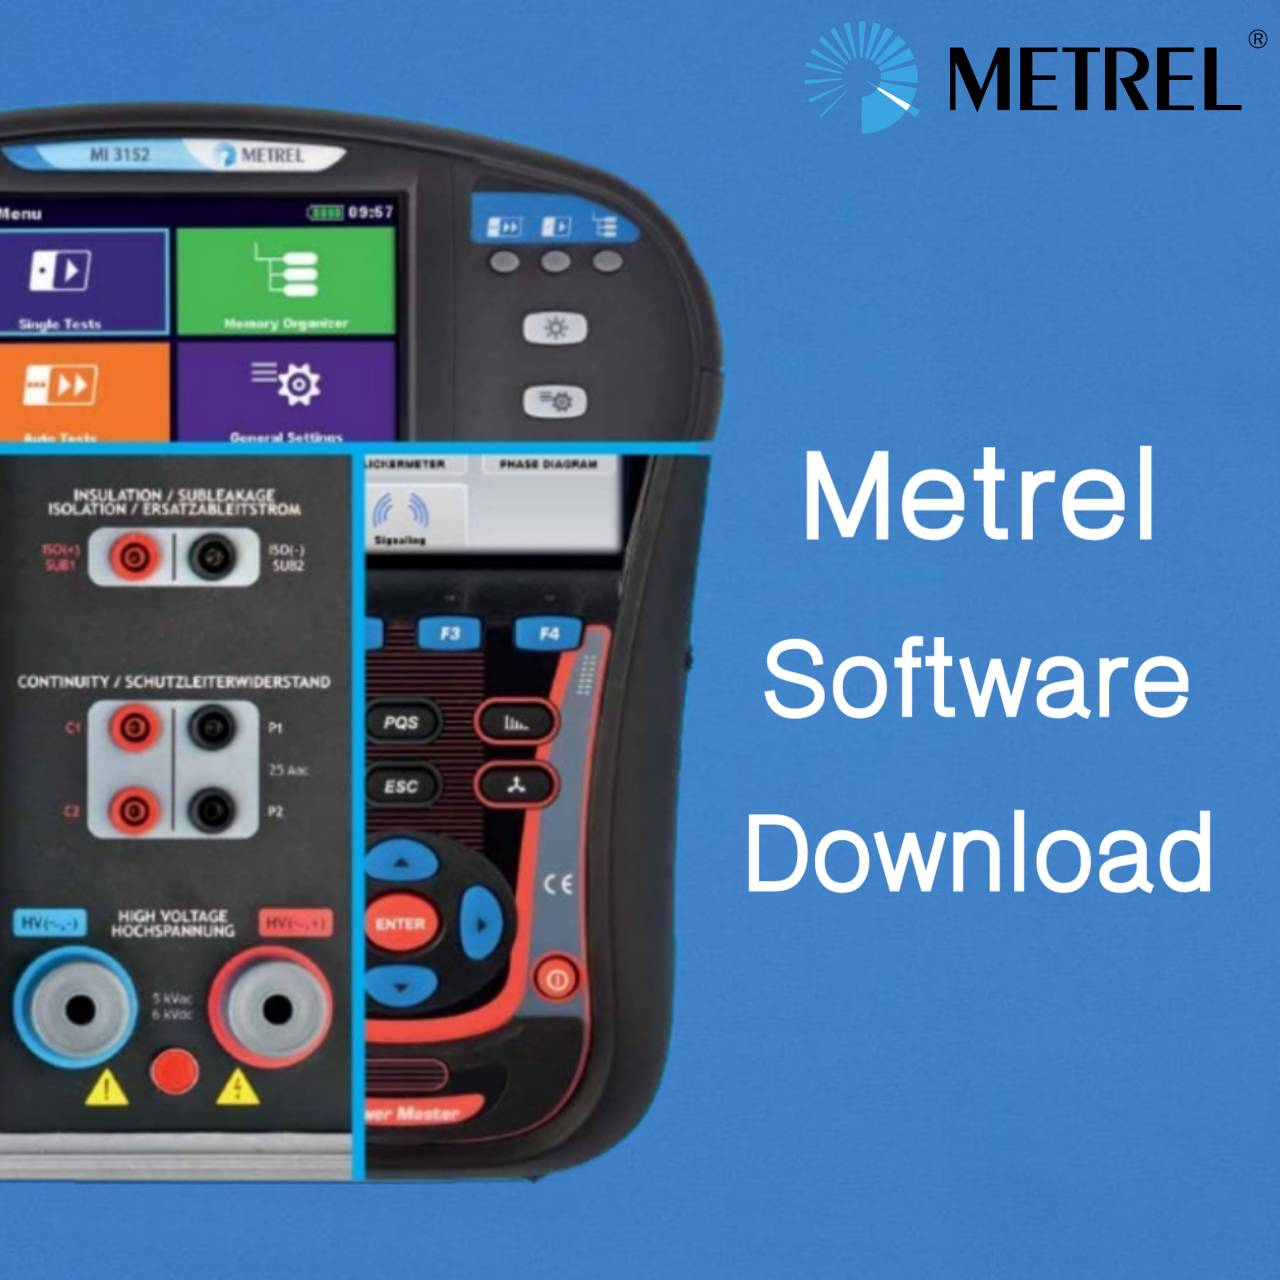 Metrel Software Download